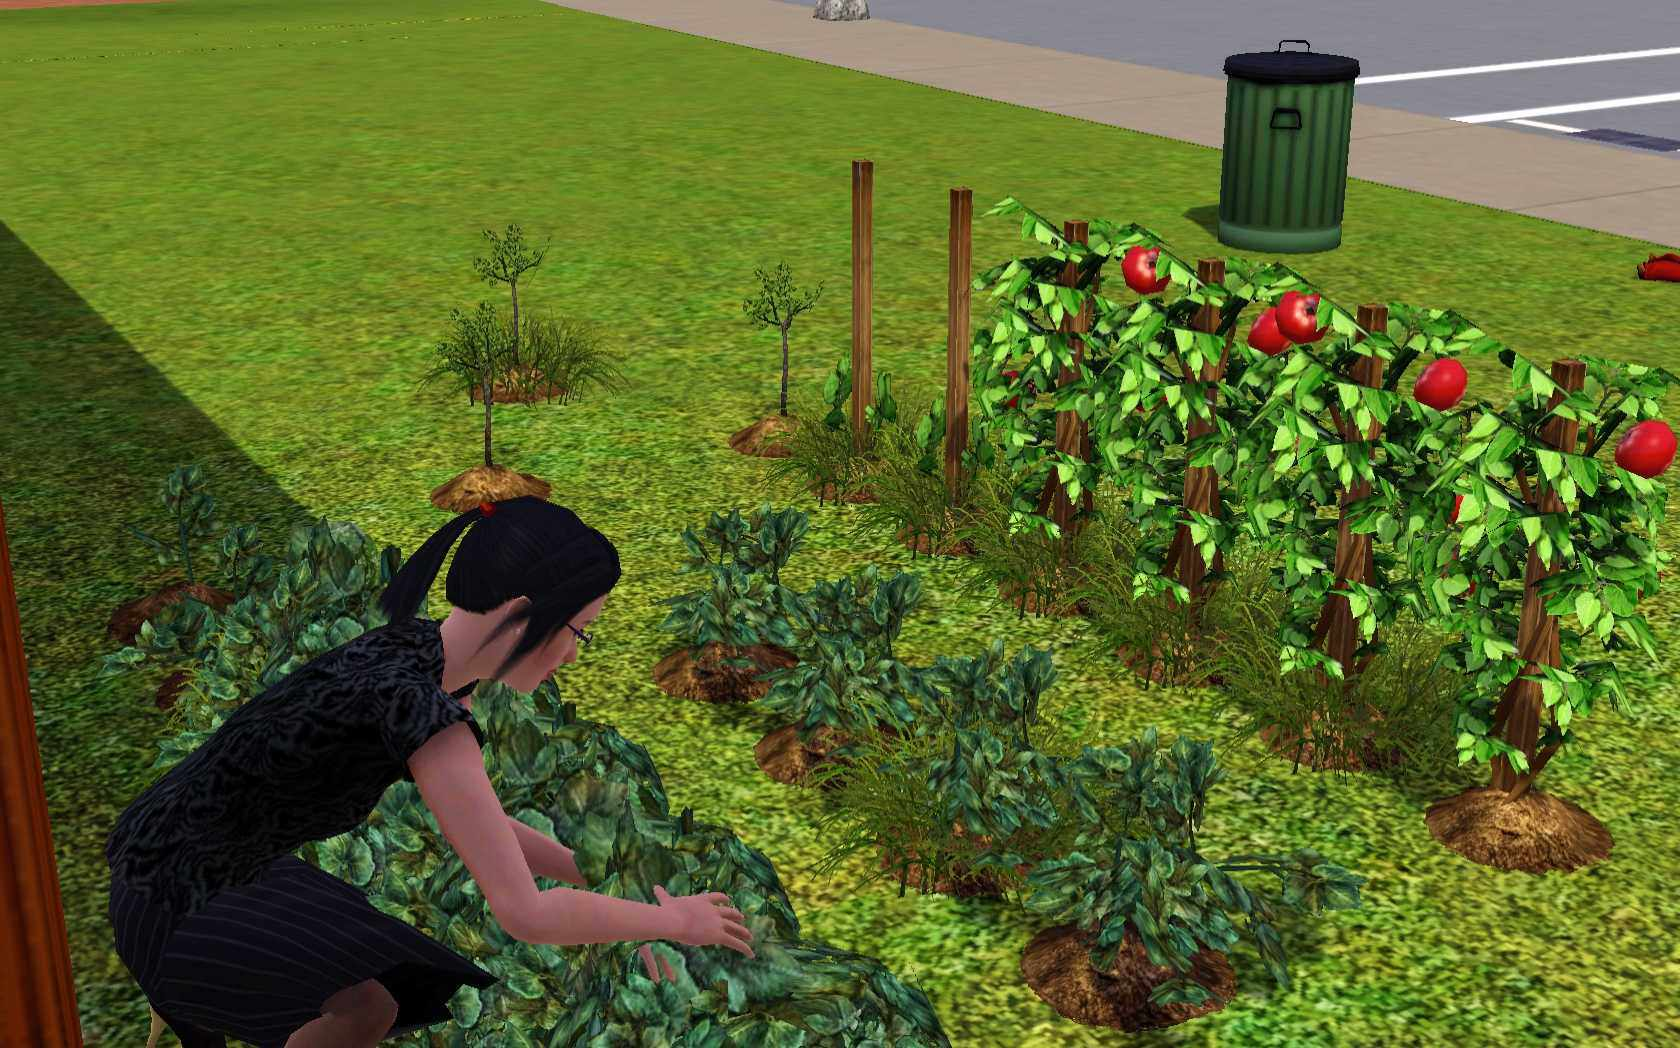 The Sims 3 Gardening Guide Fertilizer Secrets Tips and Help